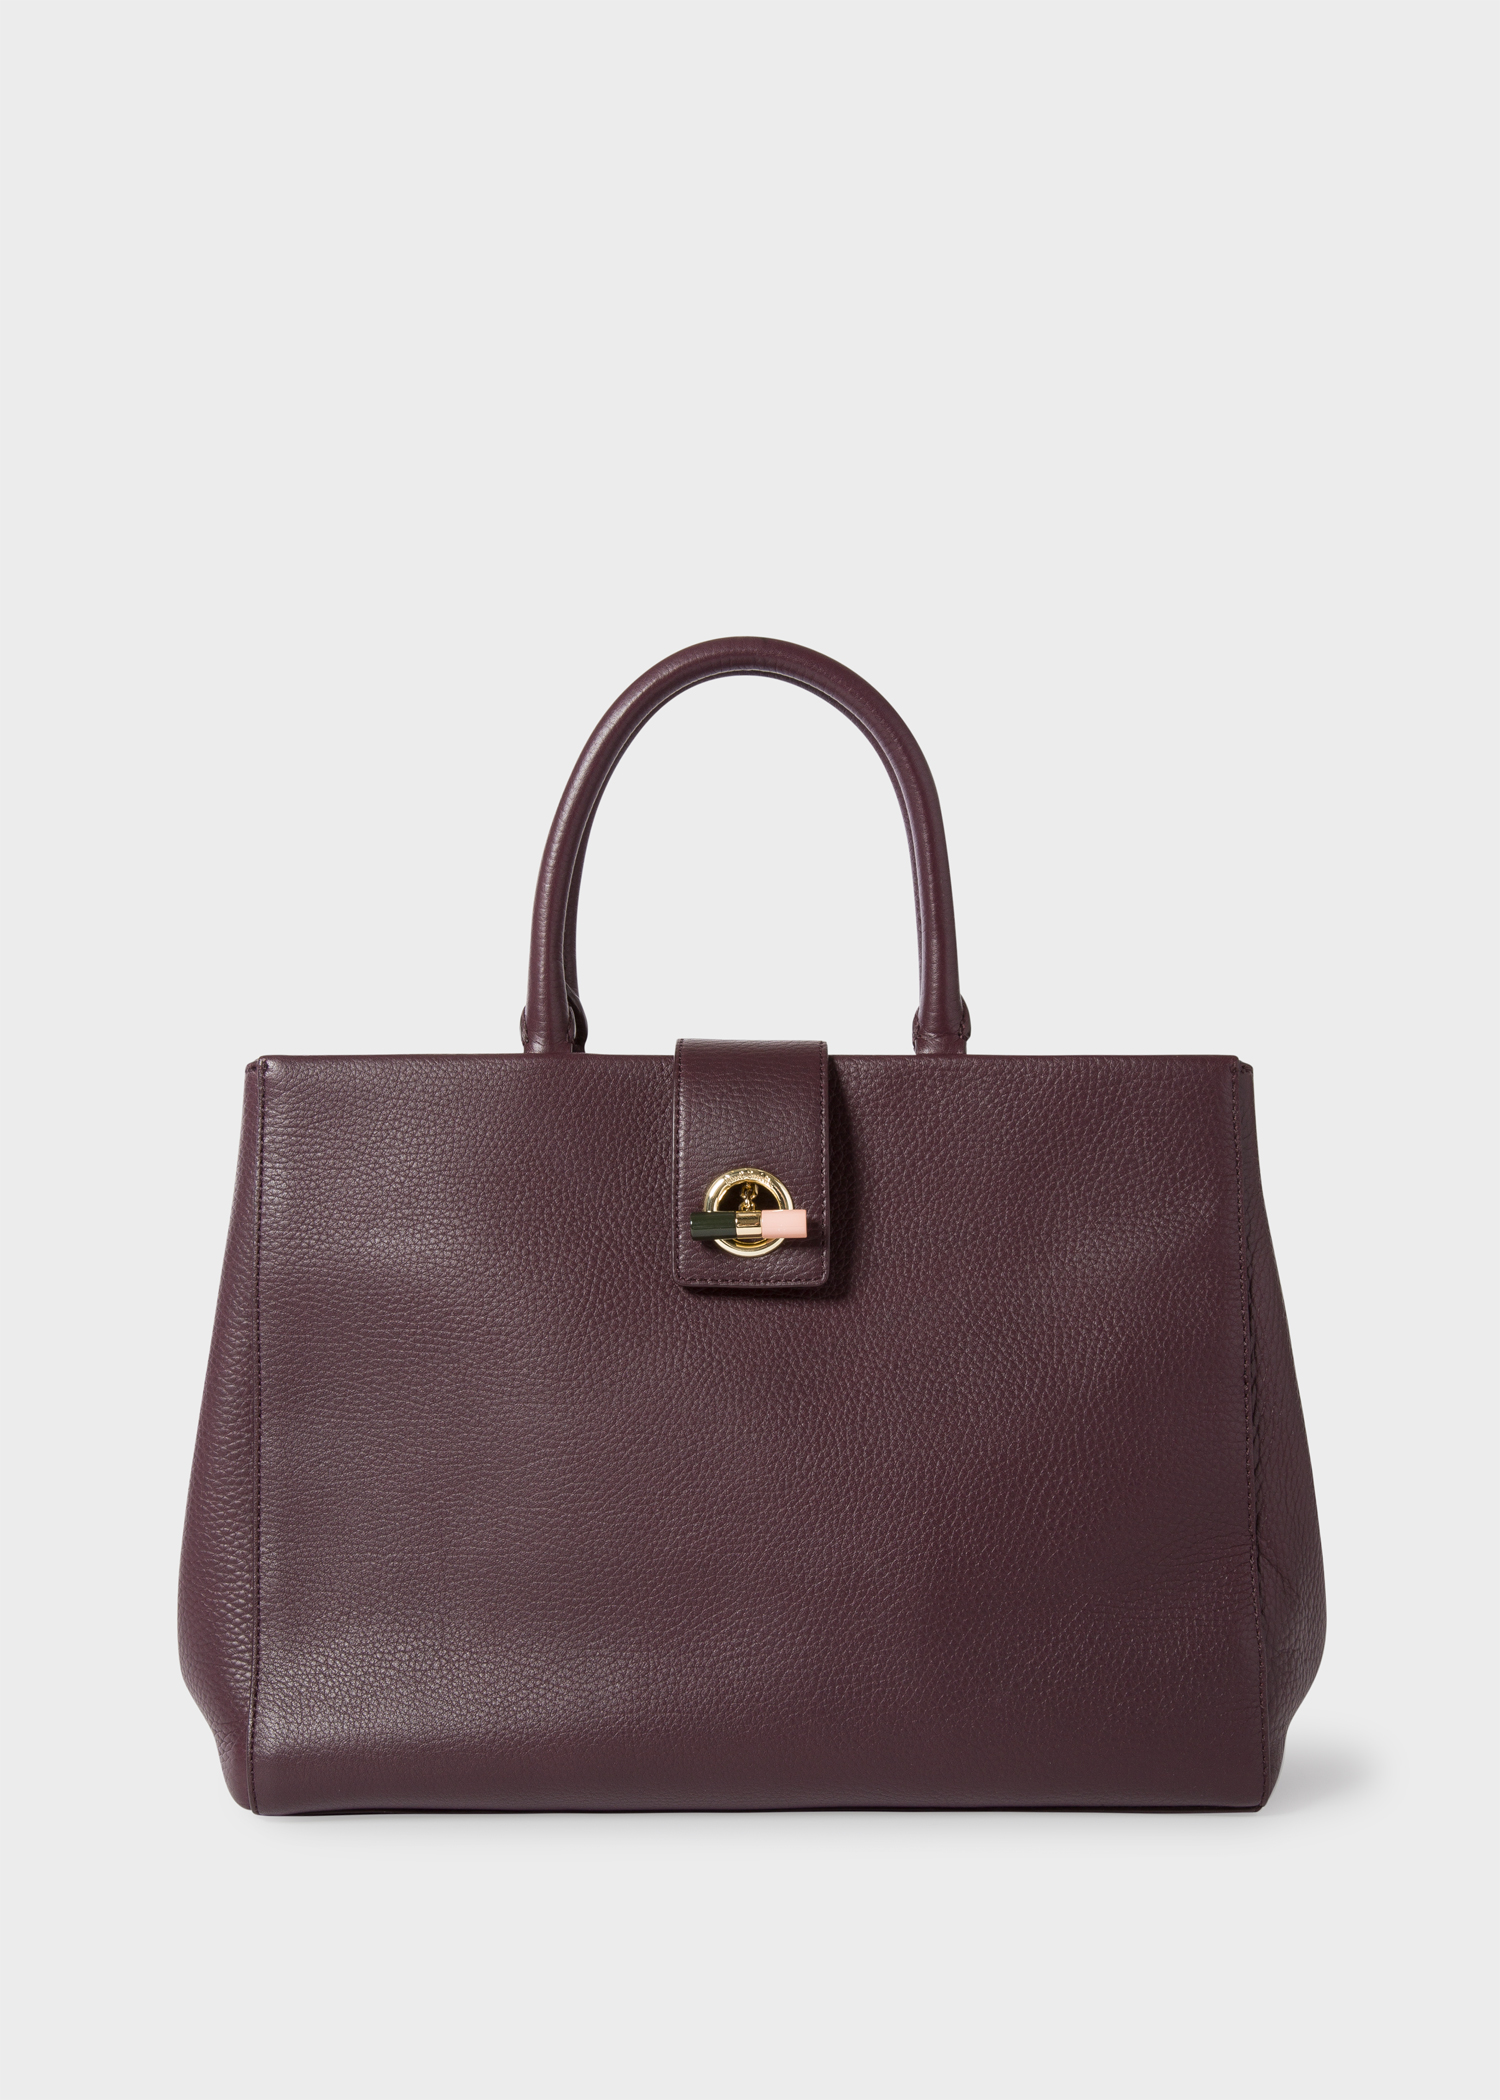 Women S Burgundy T Bar Leather Tote Bag Paul Smith